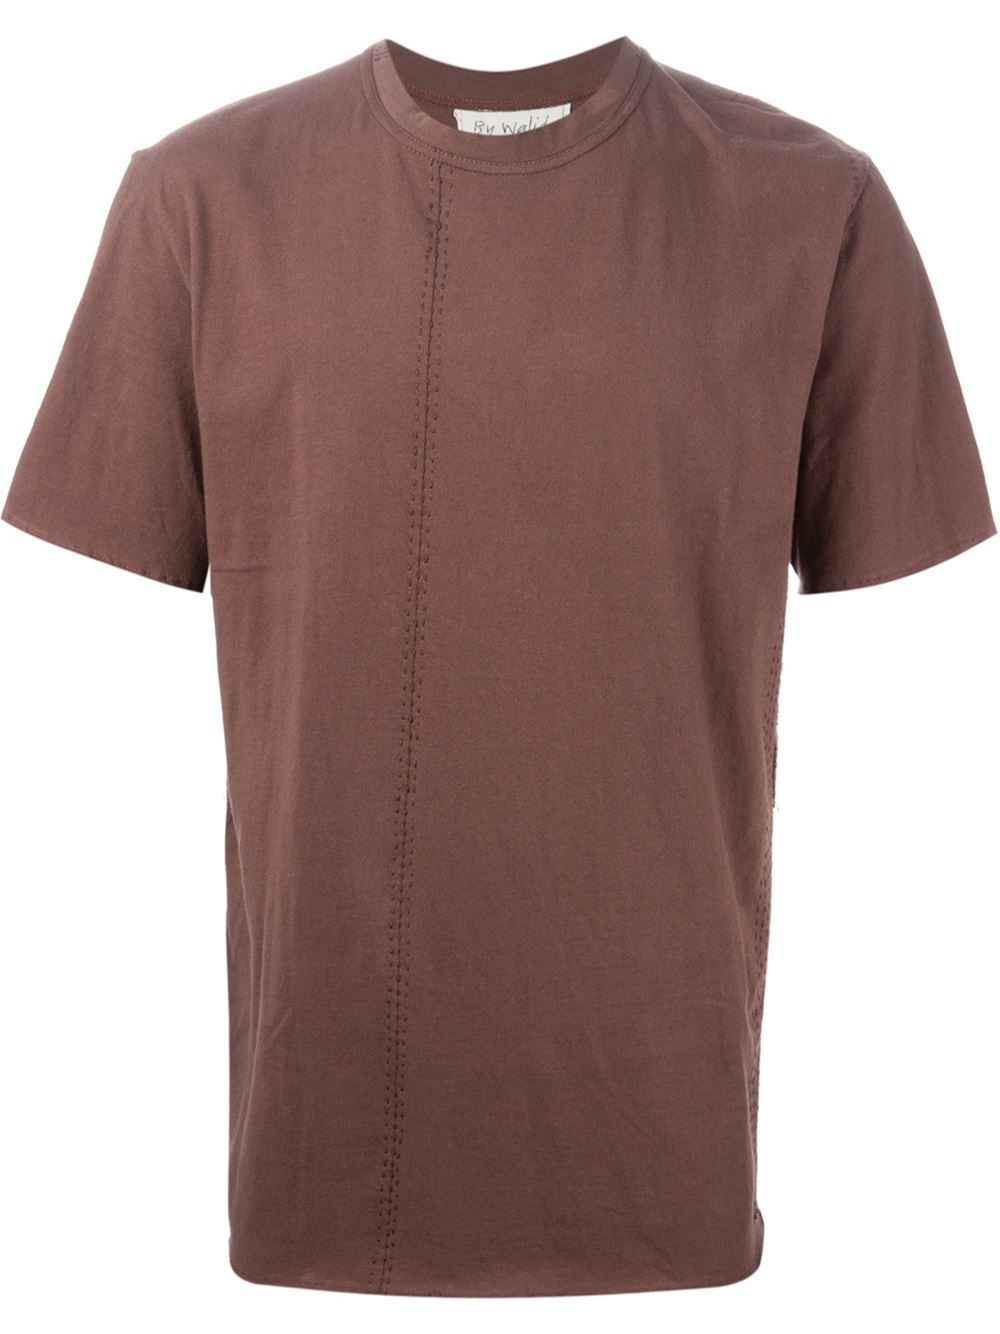 by walid embroidered loose fit t shirt in brown for men lyst